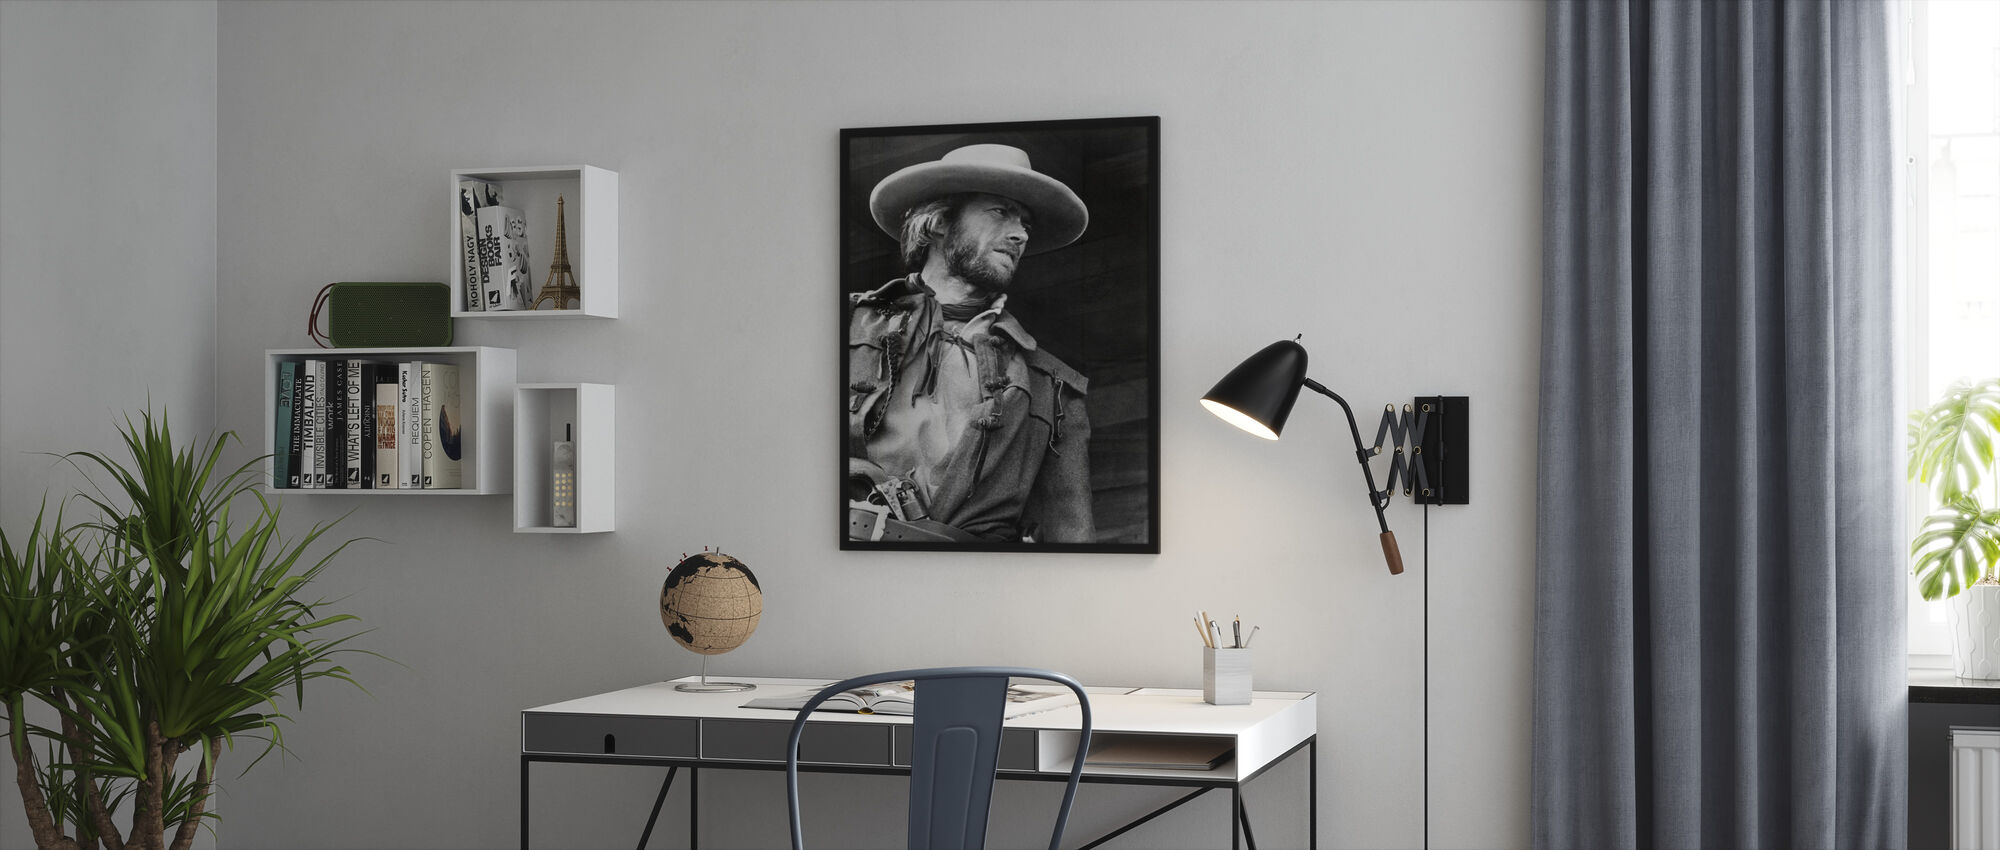 The Outlaw Josey Wales - Grey scale - Framed print - Office